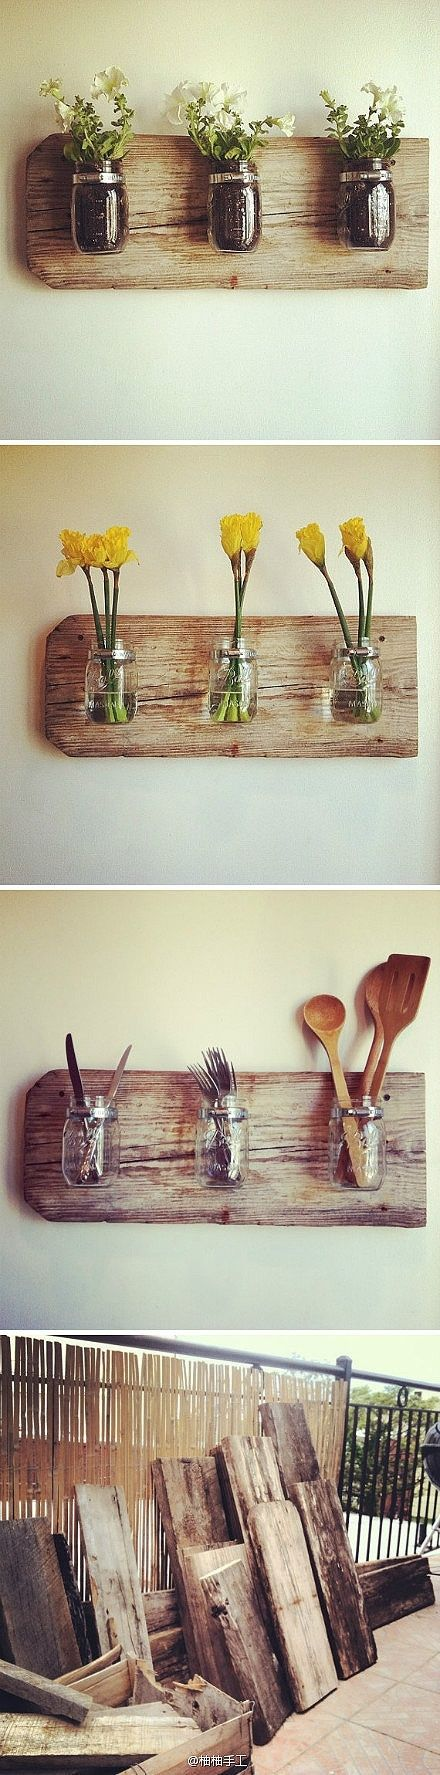 may be cool idea for storing pencils and paint brushes!